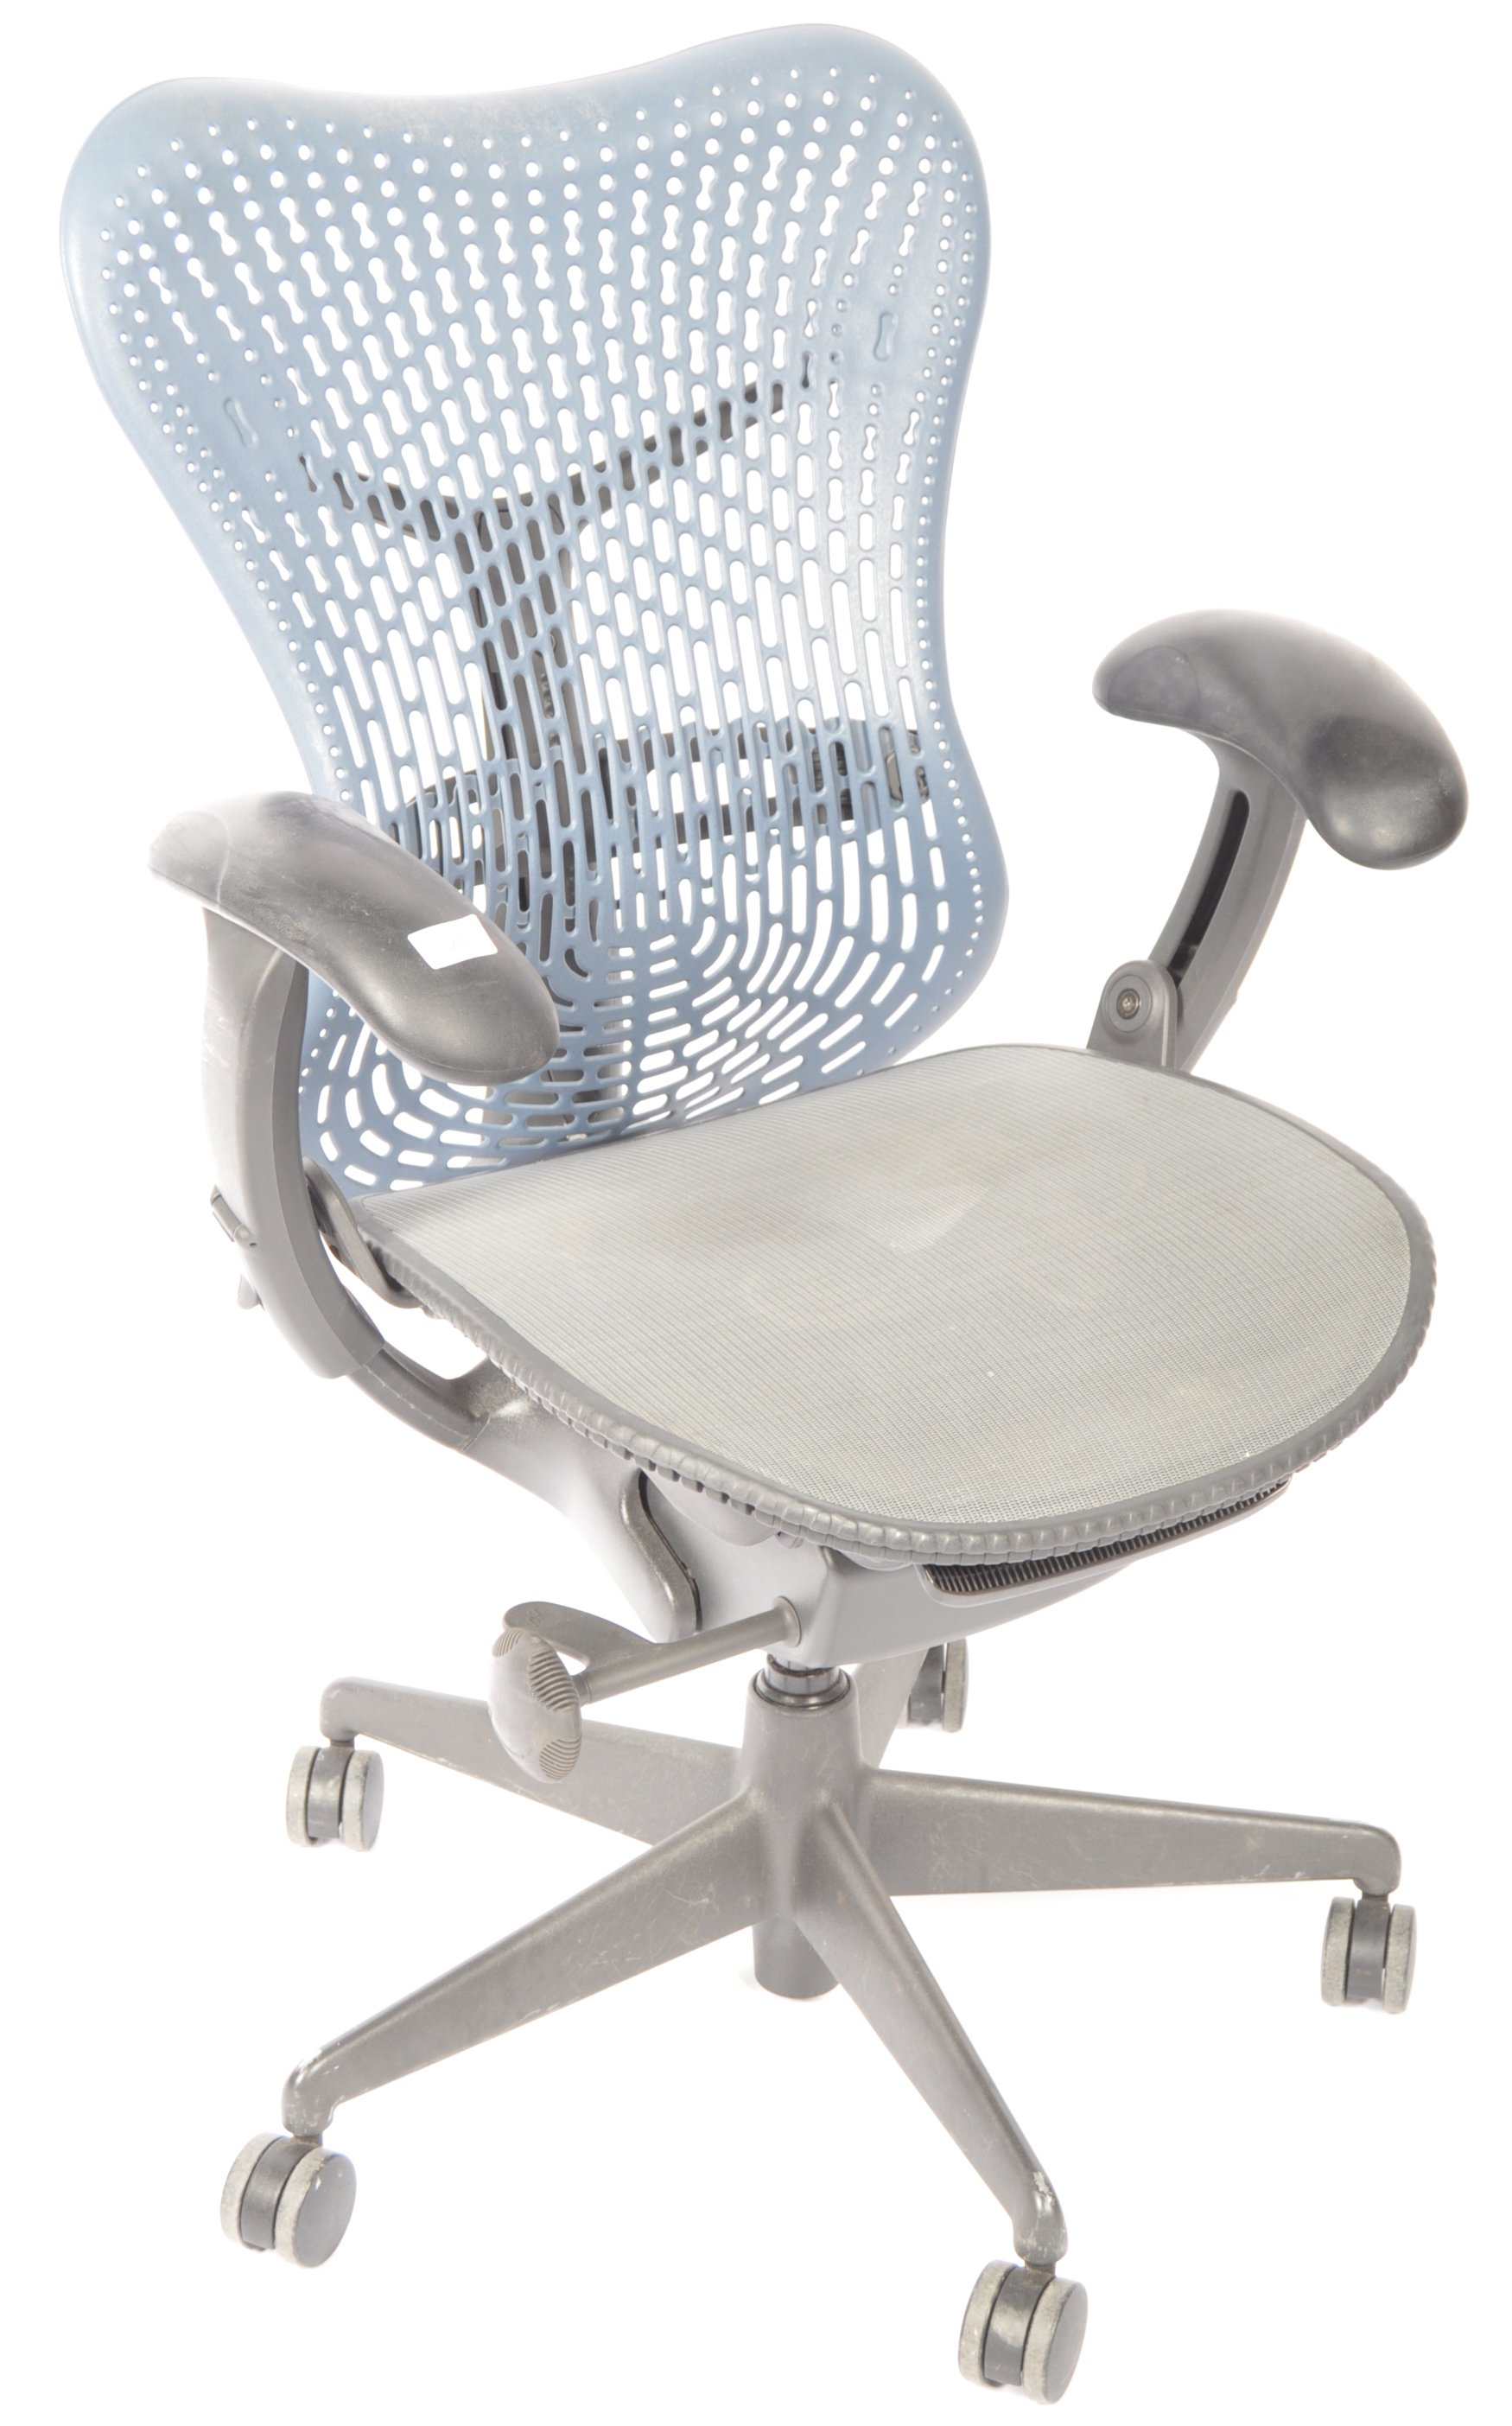 Lot 20 - HERMAN MILLER MIRRA 2 SWIVEL DESK CHAIR BY STUDIO